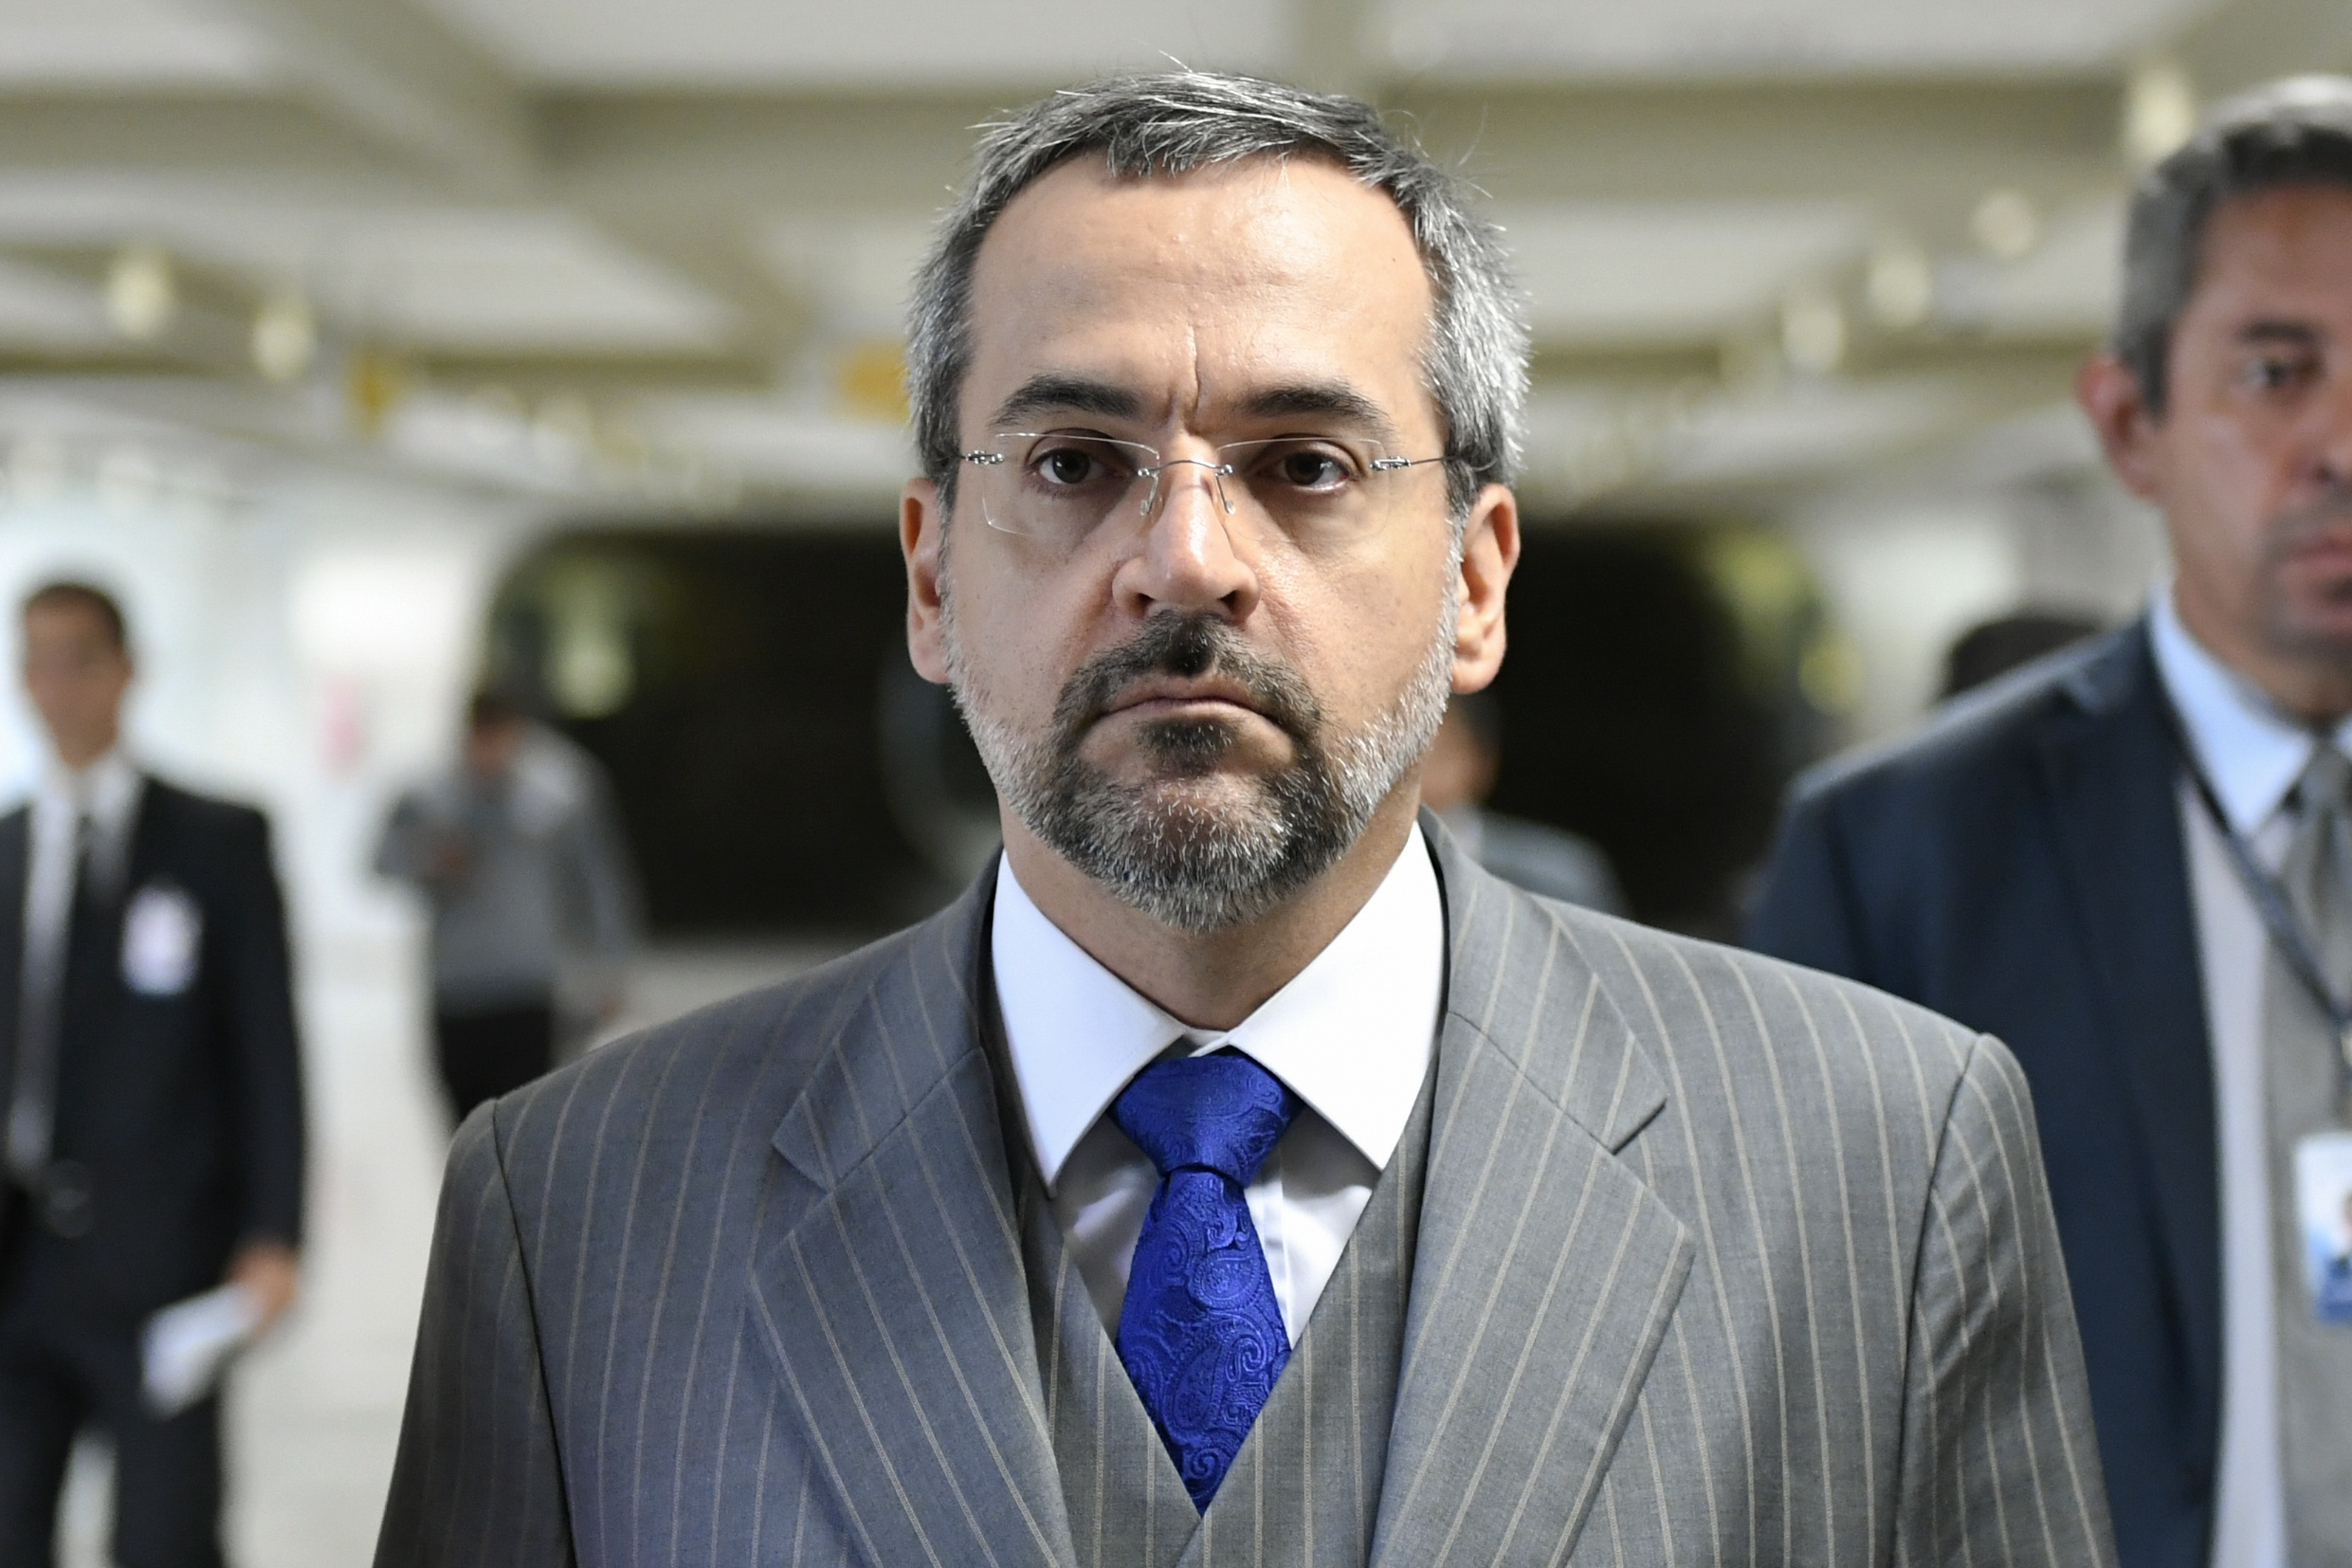 Brazilian Minister in Hot Water After Linking Coronavirus to Chinese 'Plan for World Domination'